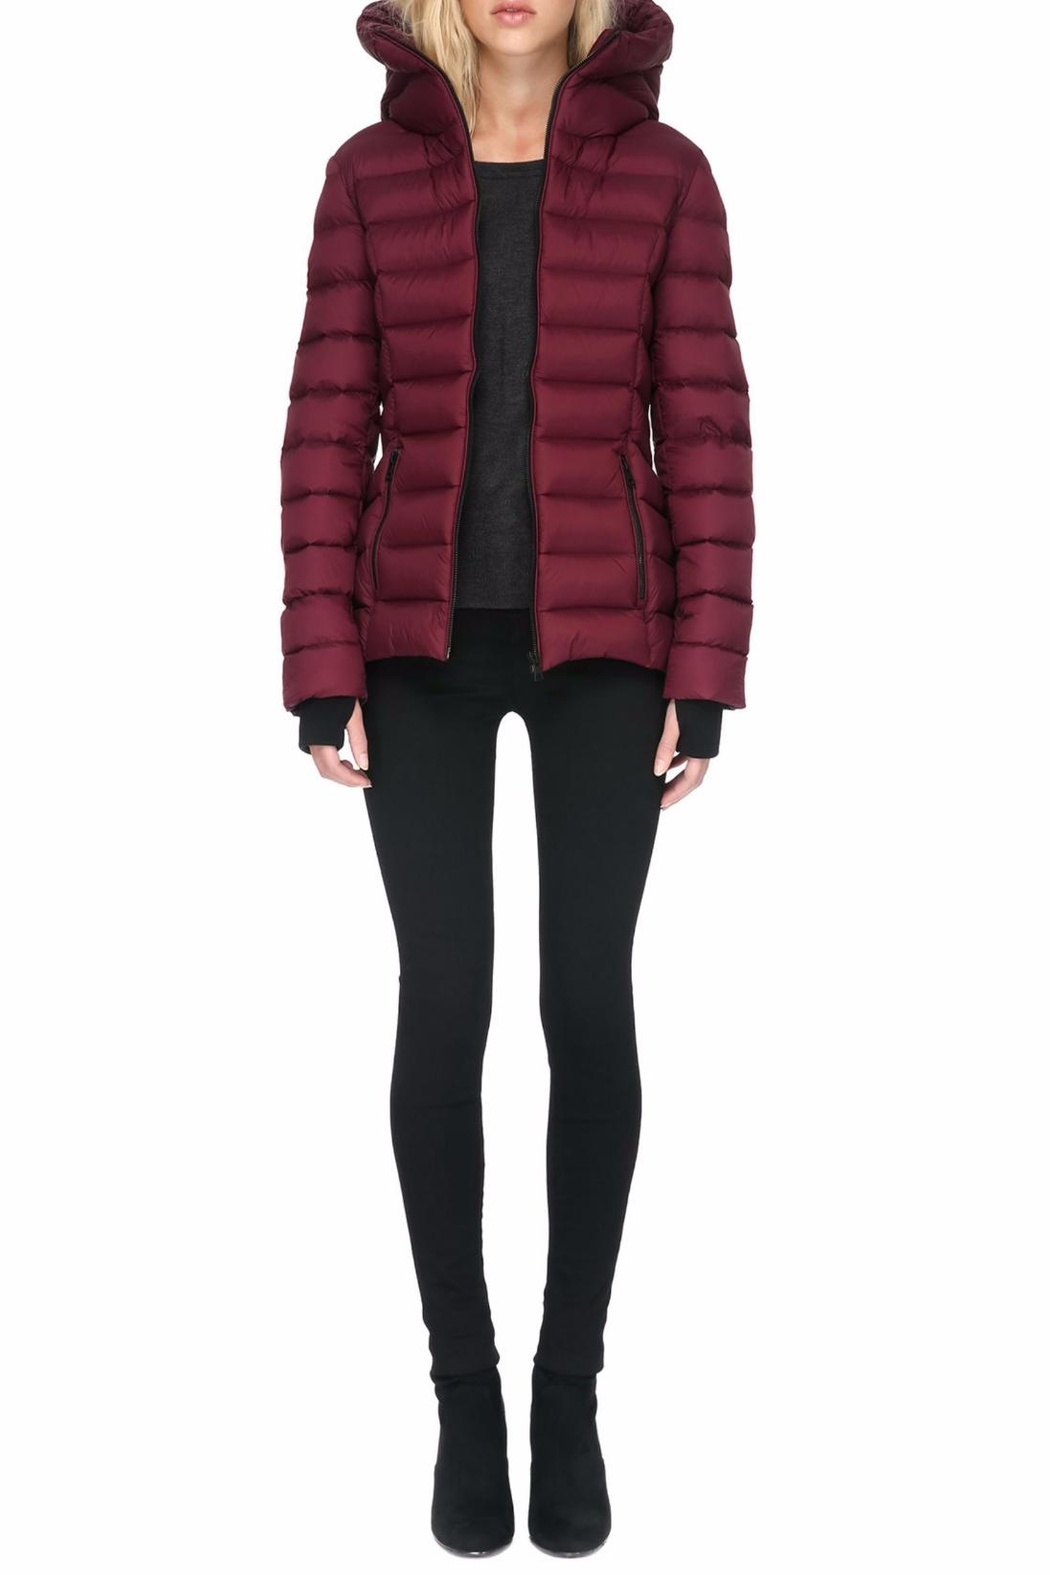 Soia & Kyo Charlise Light Down Jacket - Front Full Image